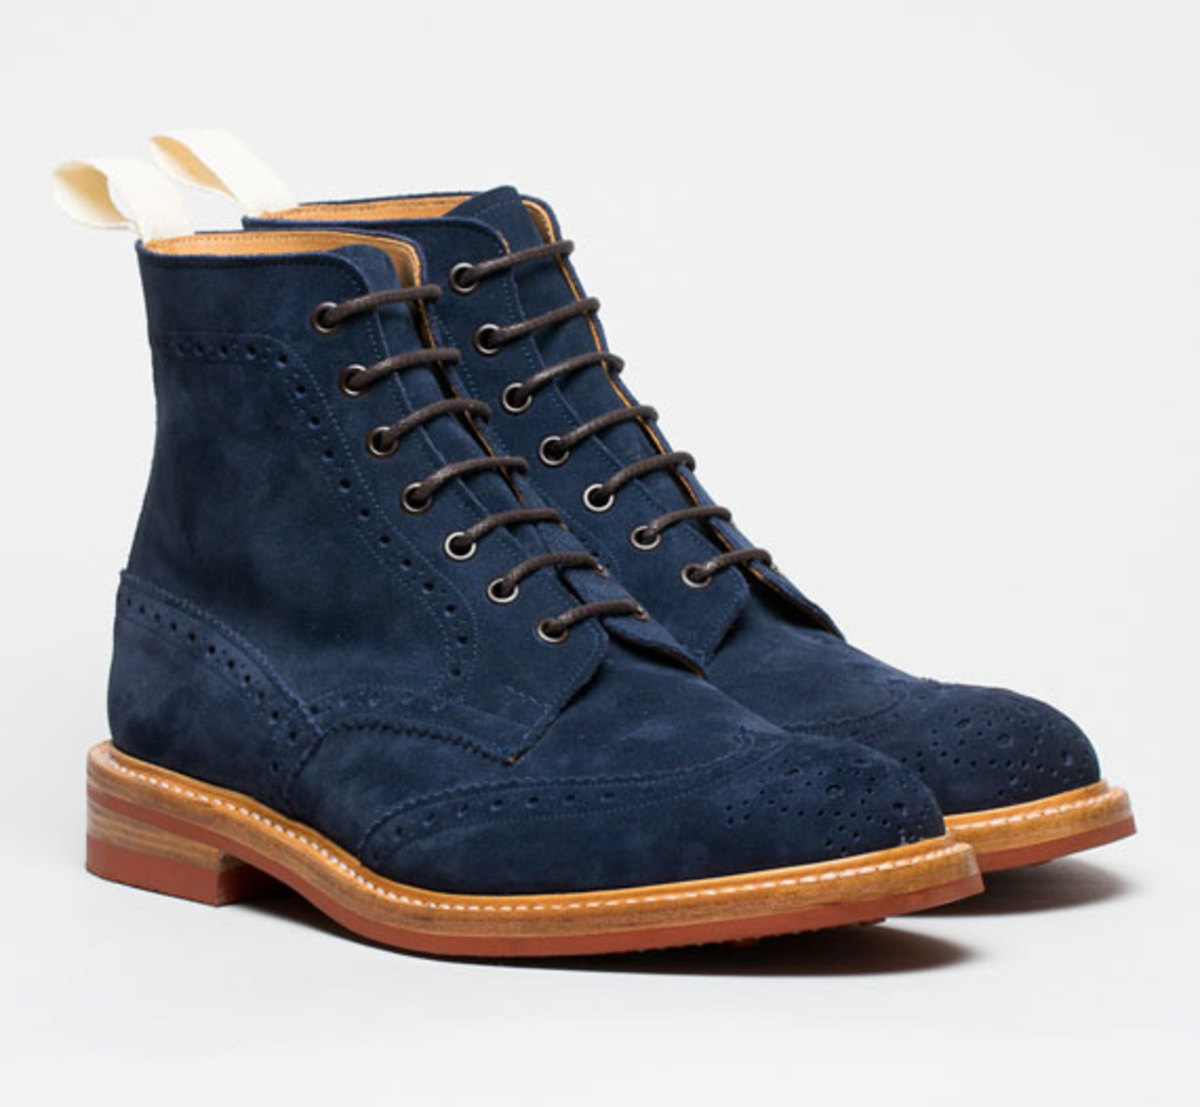 norse-projects-trickers-repello-brogue-boots-10